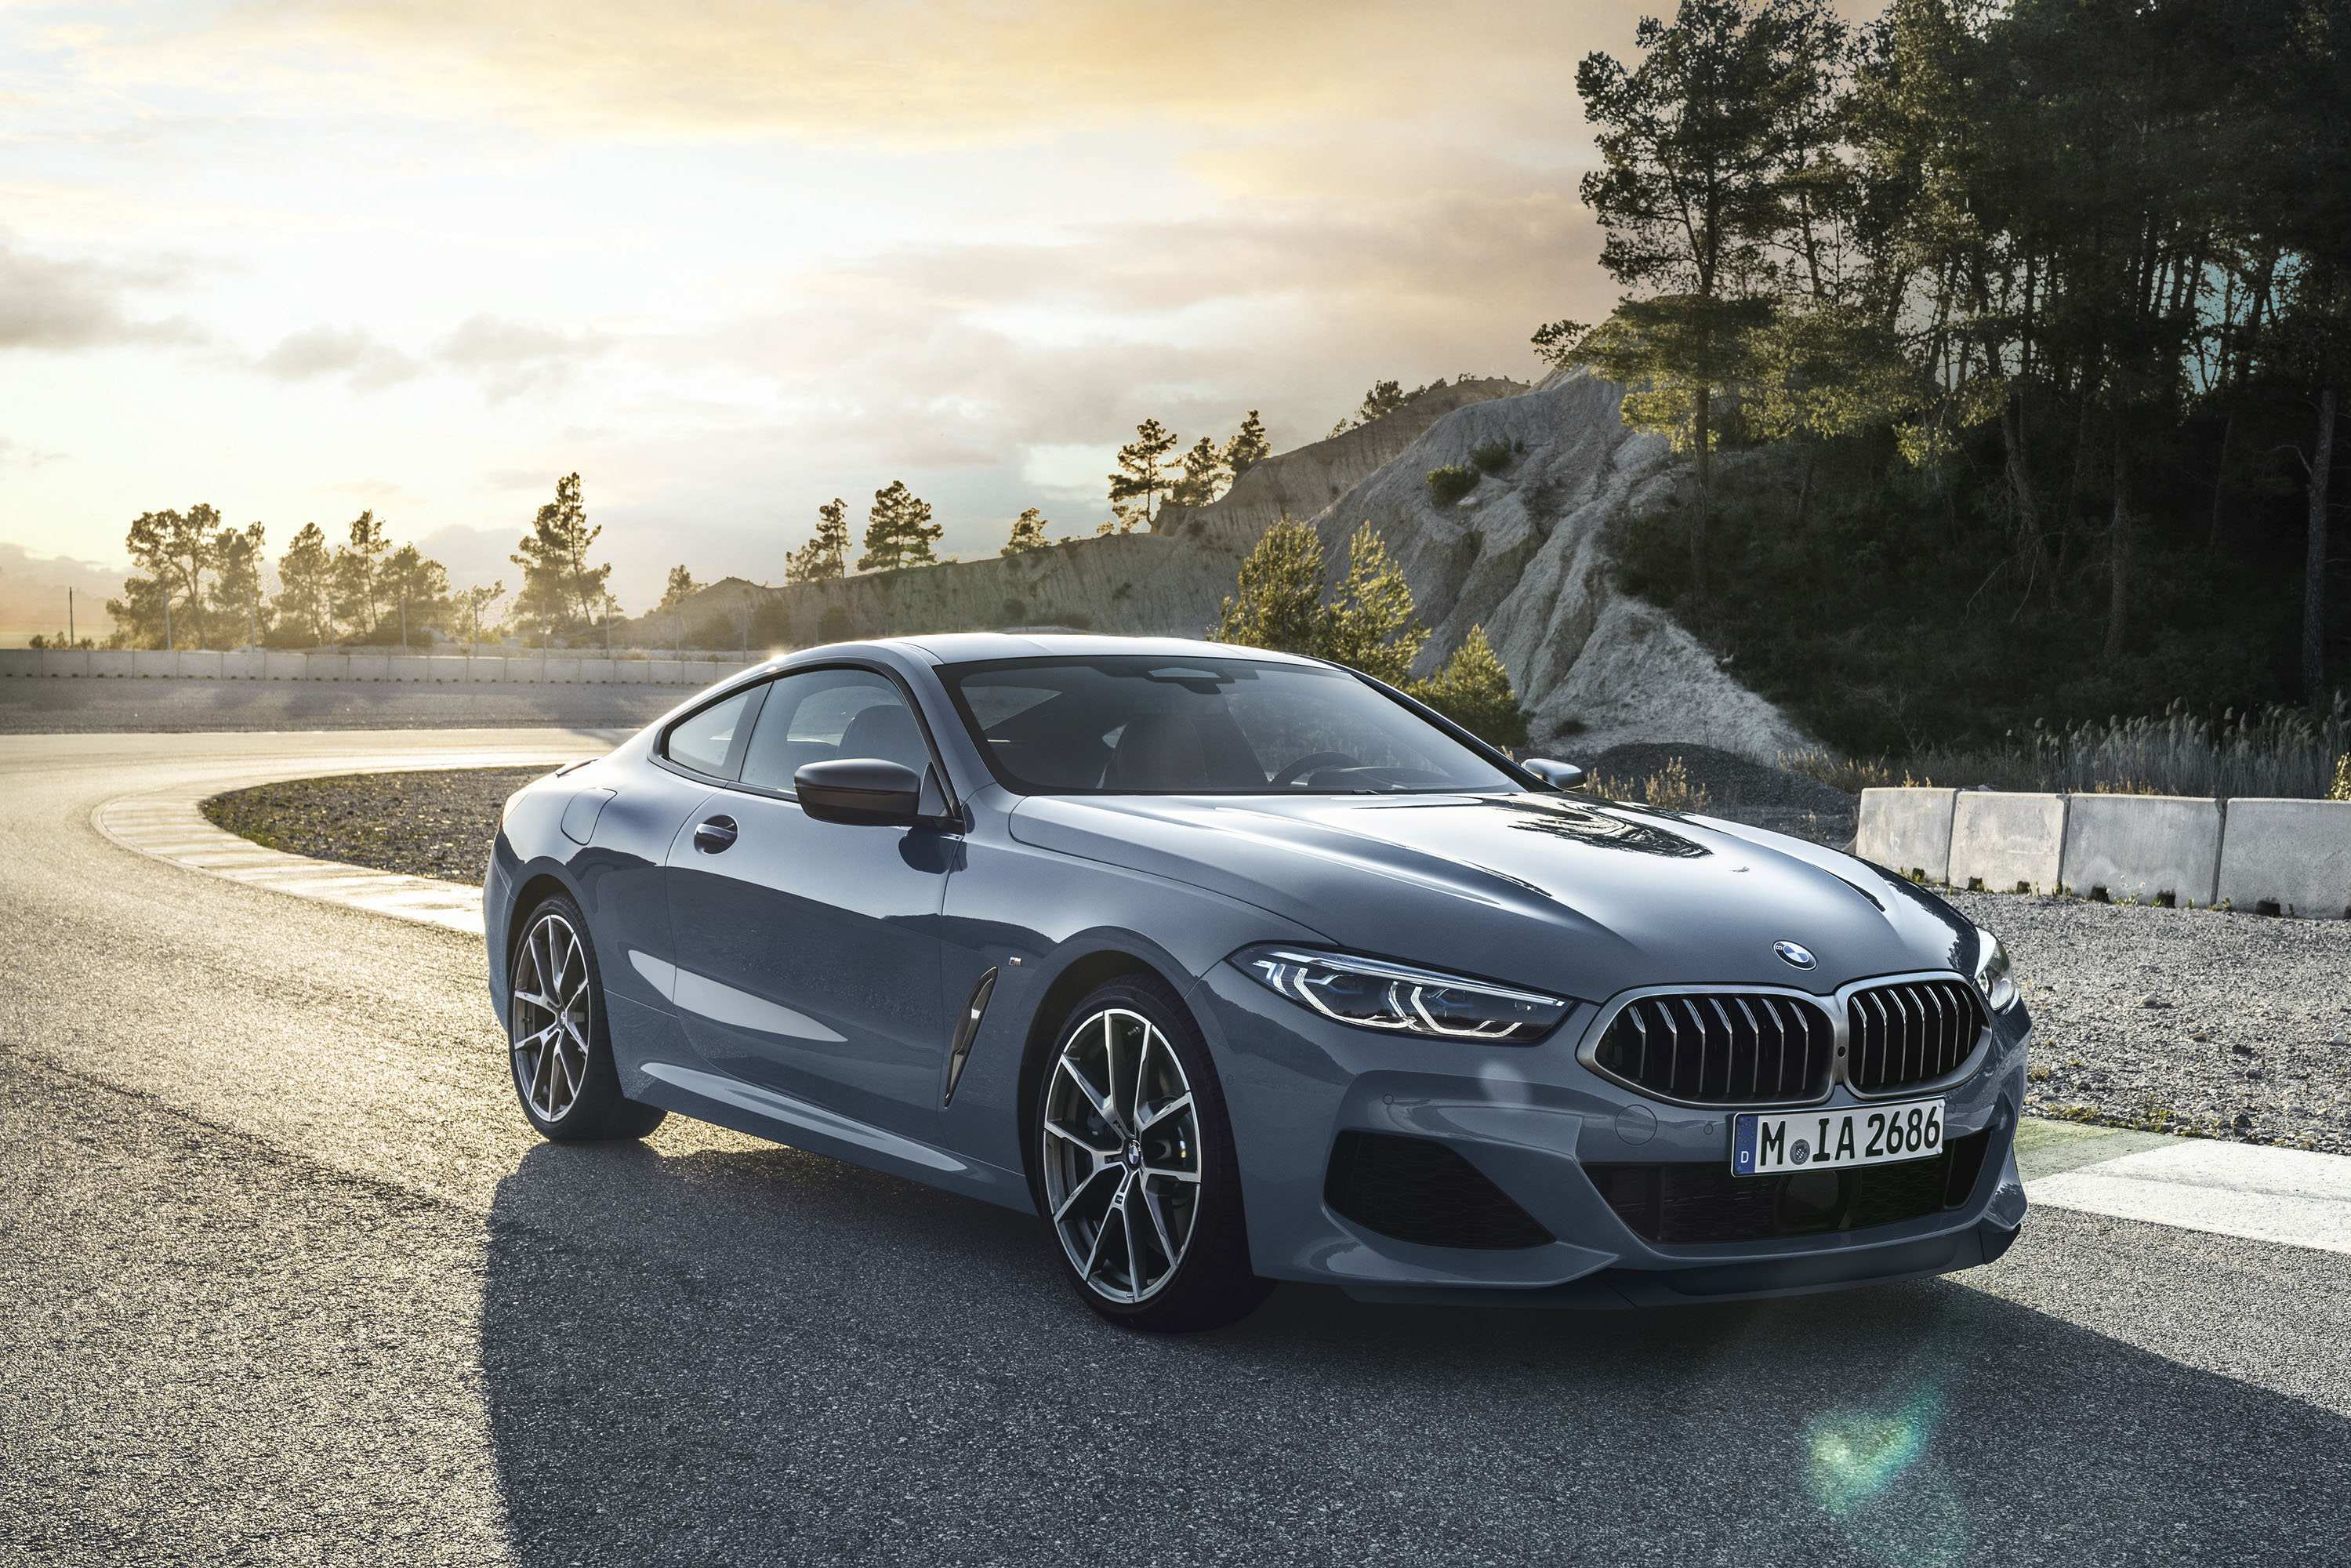 91 Great 2019 Bmw Coupe Engine by 2019 Bmw Coupe